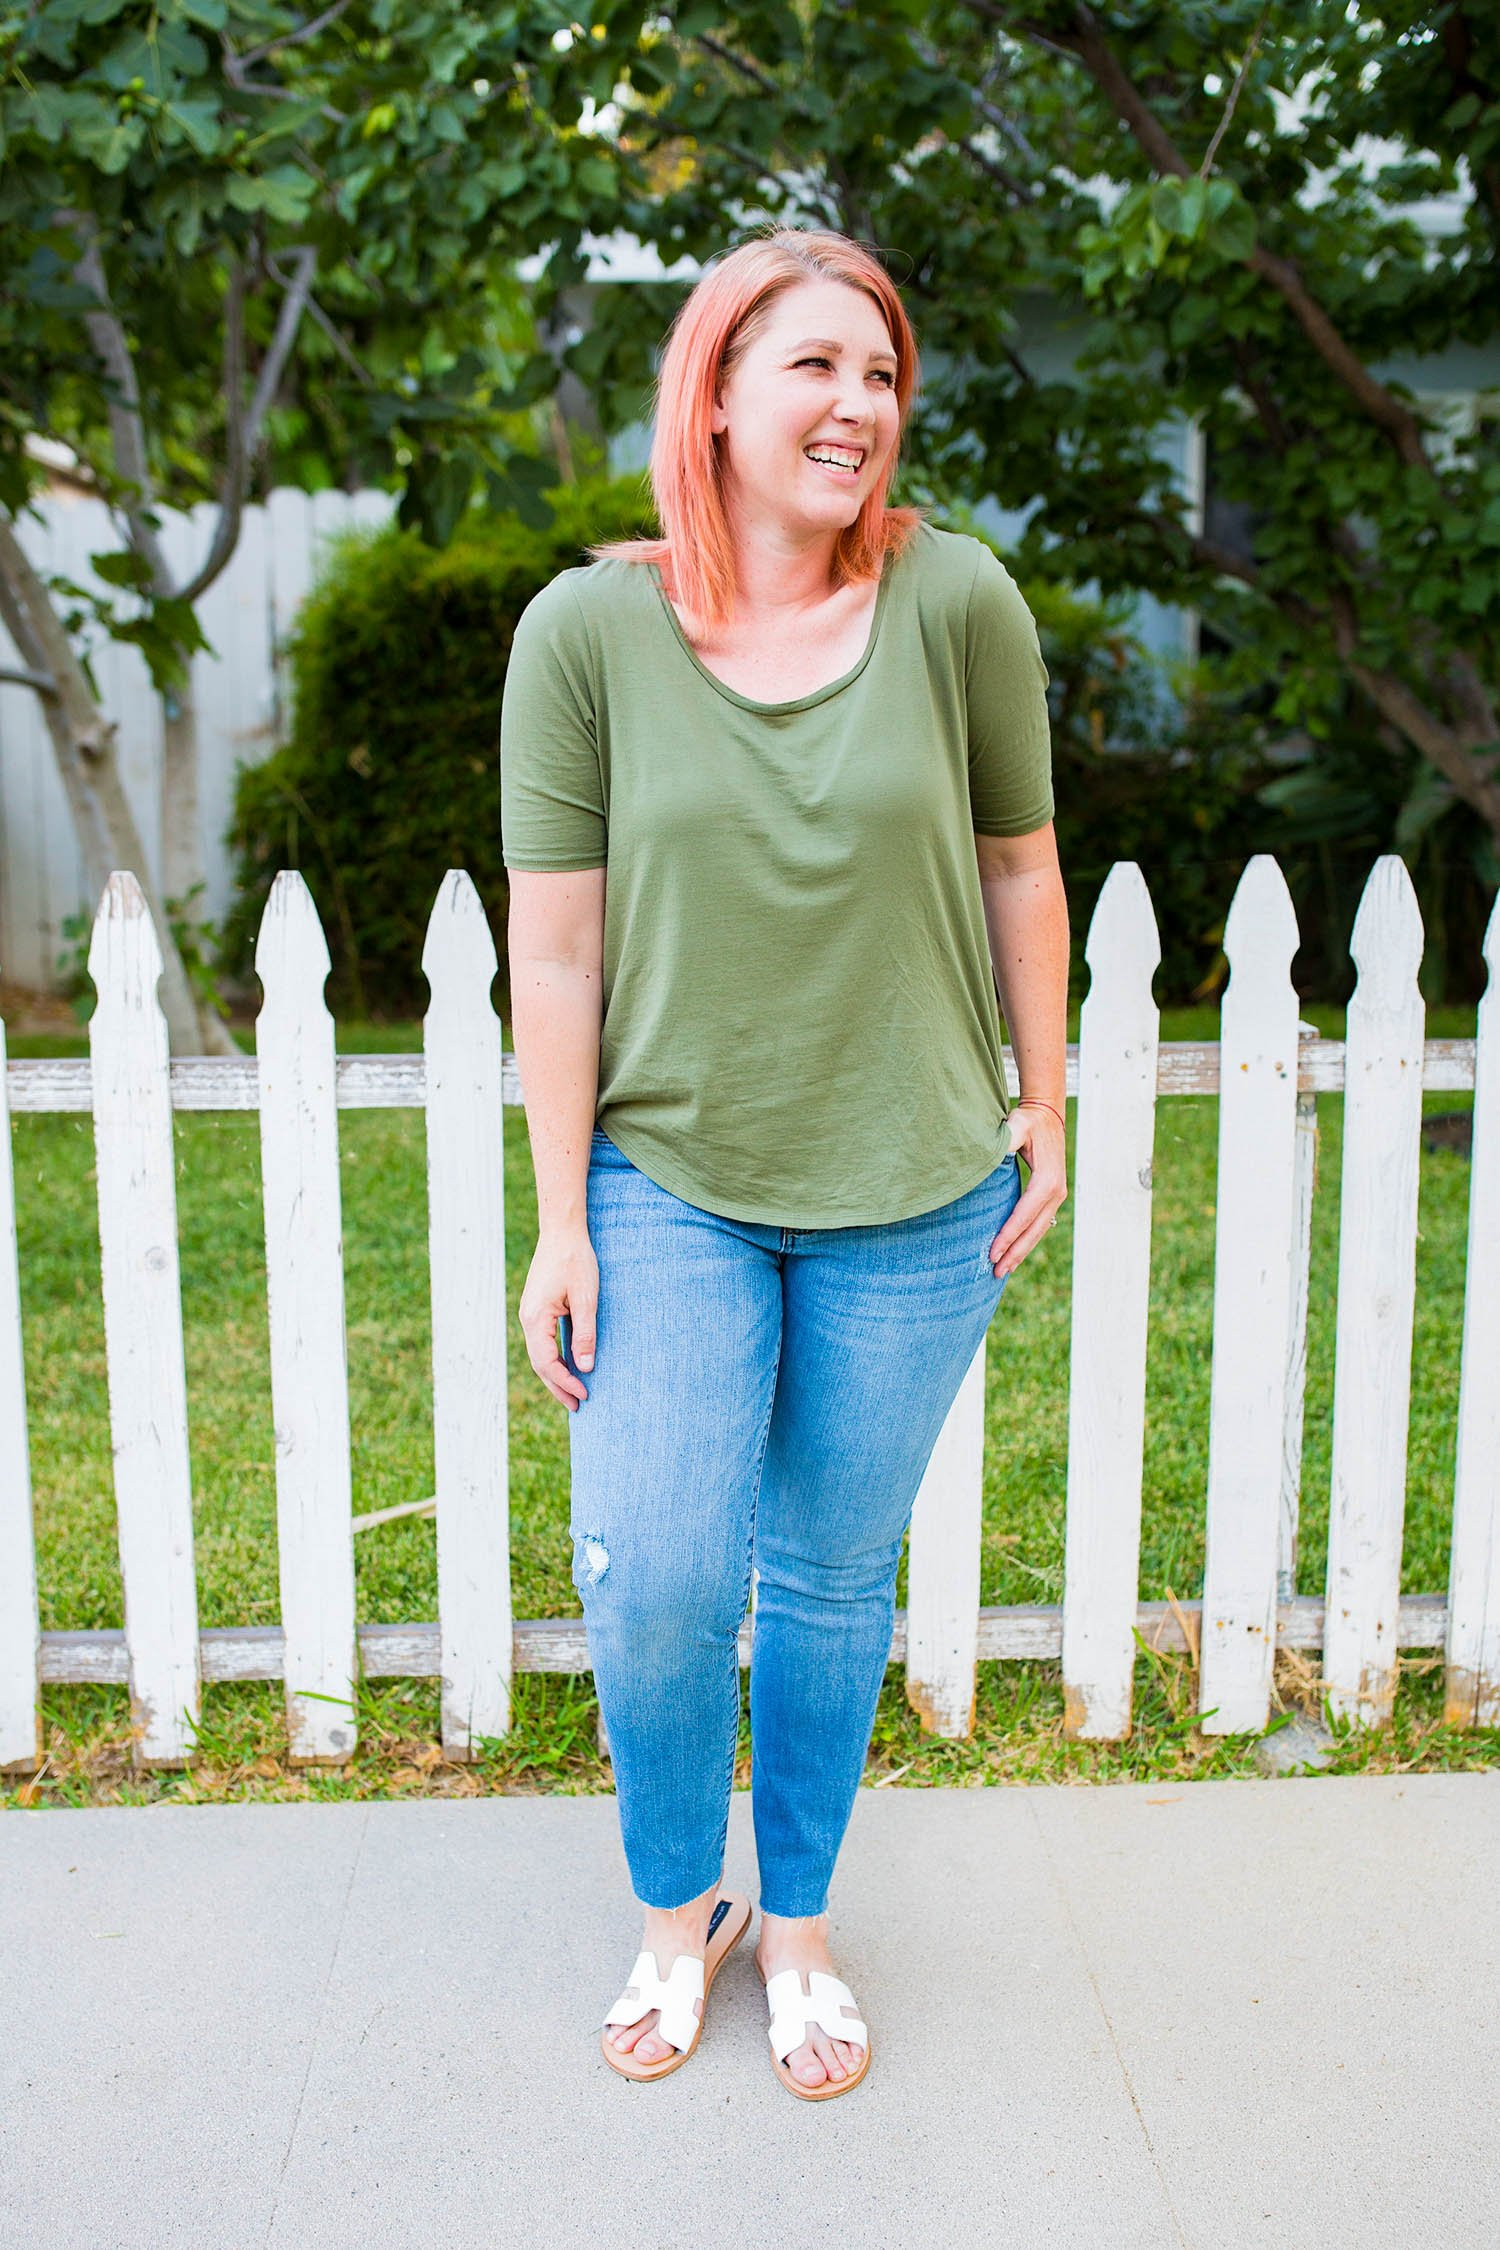 Nordstrom Anniversary Sale 2018: Fall outfits time is HERE, and these light colored jeans are a GREAT price!